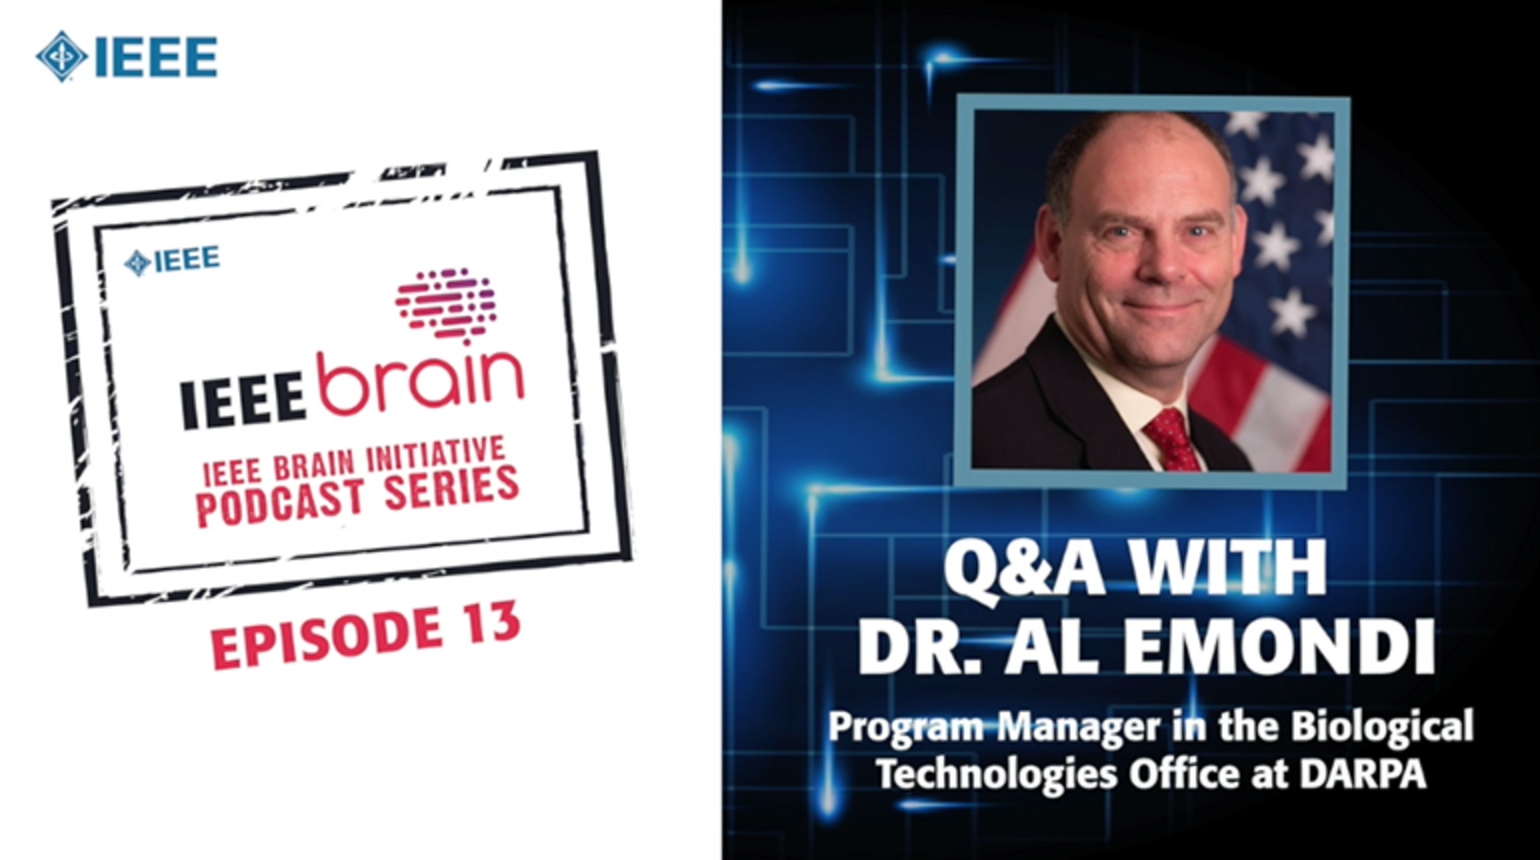 Q&A with Dr. Al Emondi: IEEE Brain Podcast, Episode 13